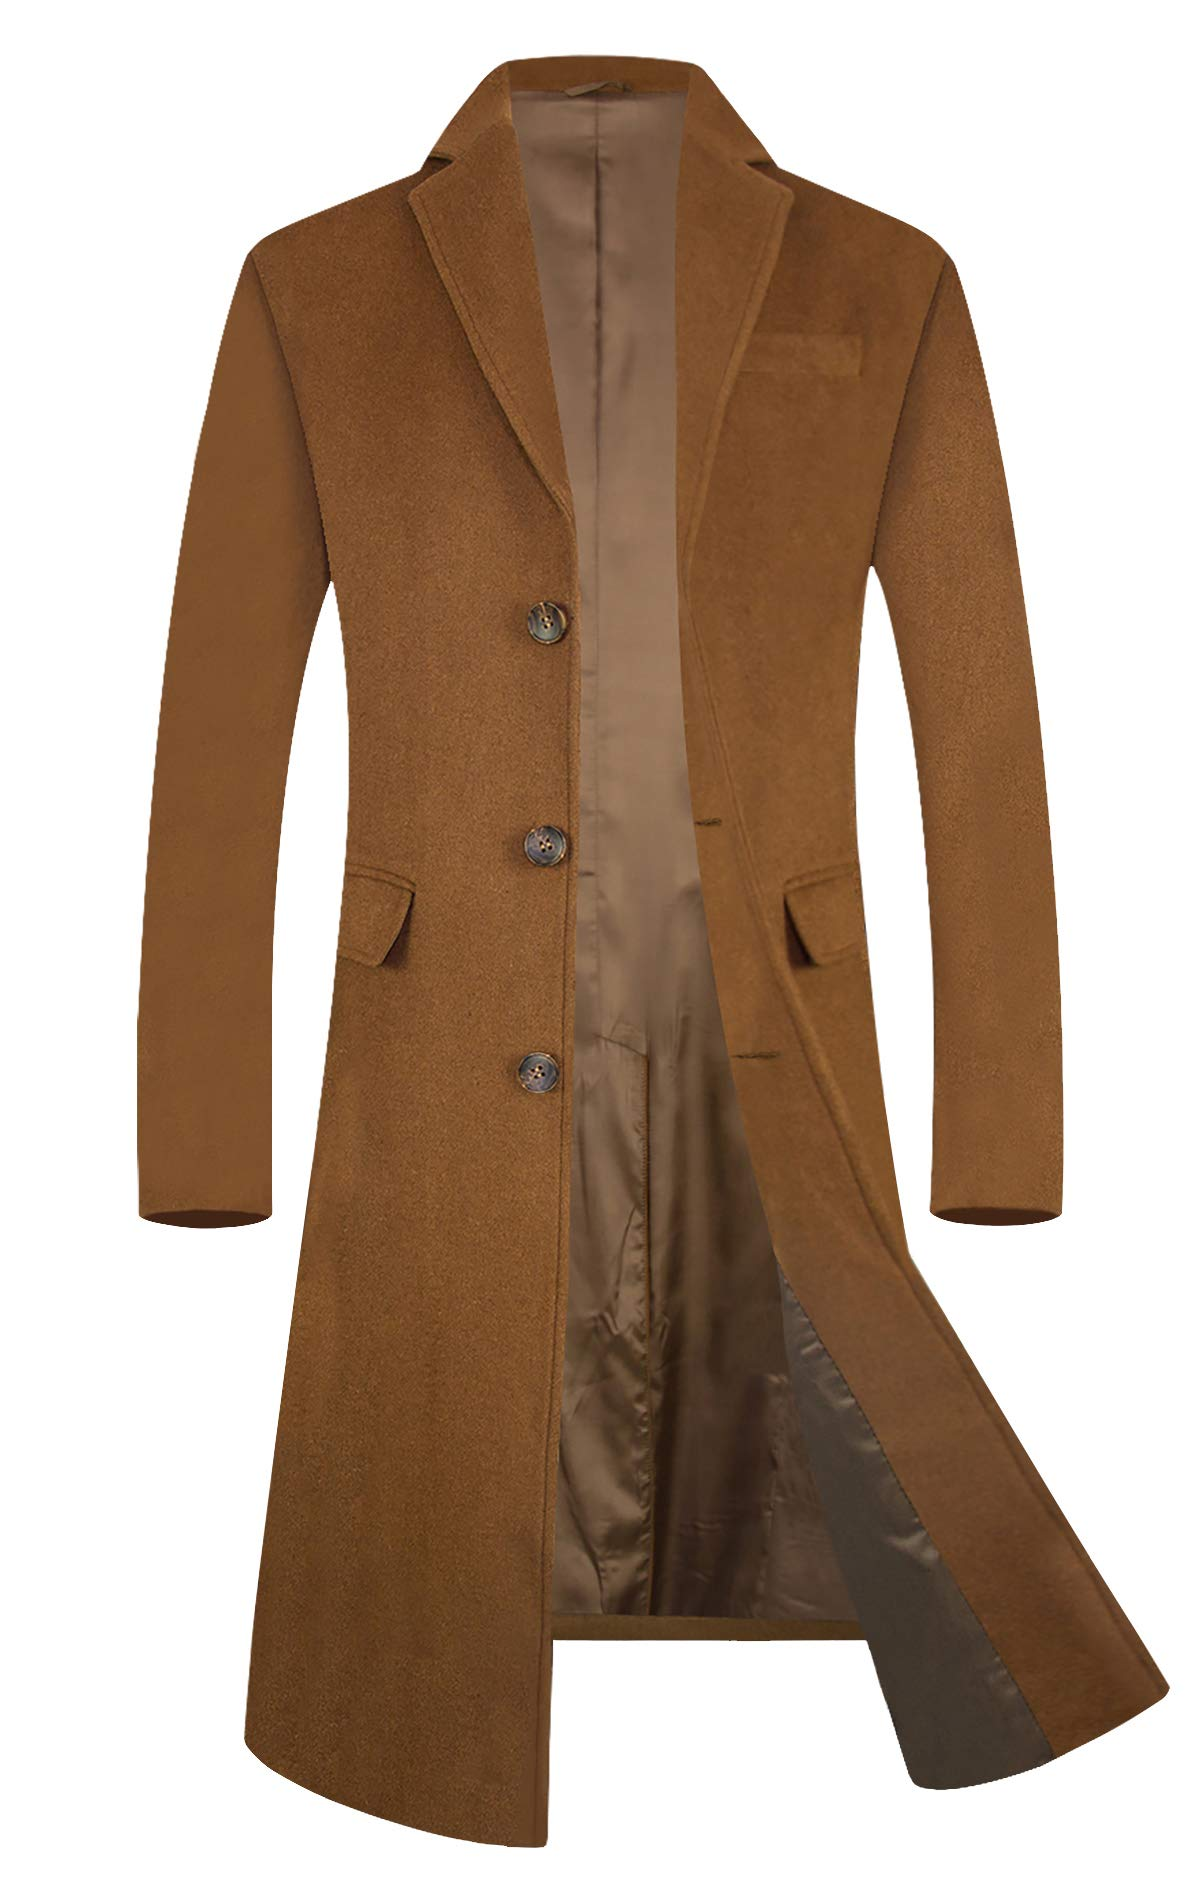 Men's Trench Coat Wool Blend French Long Jacket Business Top Coat Single Breasted 1801 Camel XL by ELETOP